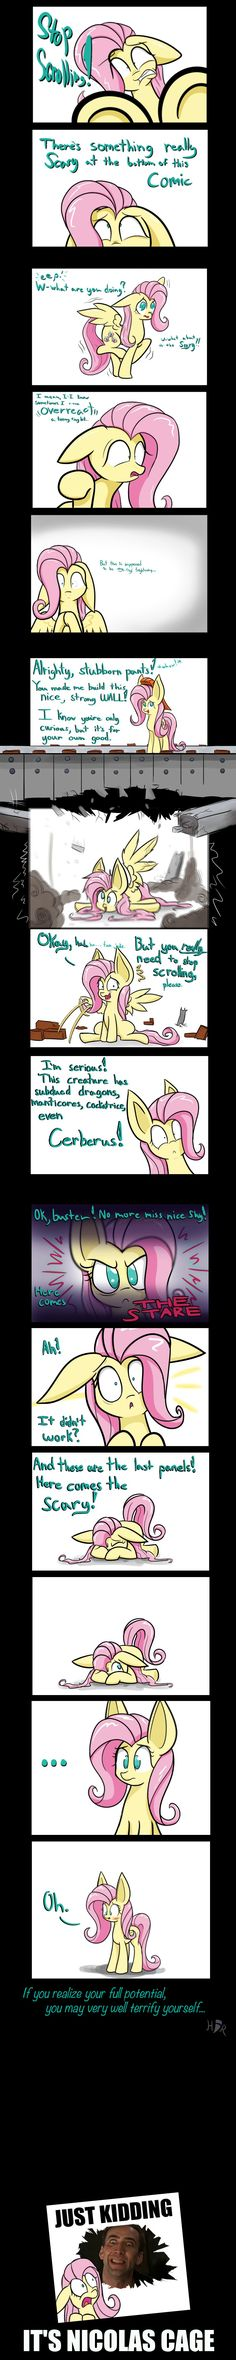 There's a Monster at The End of This Comic by Heir-of-Rick.deviantart.com on @deviantART